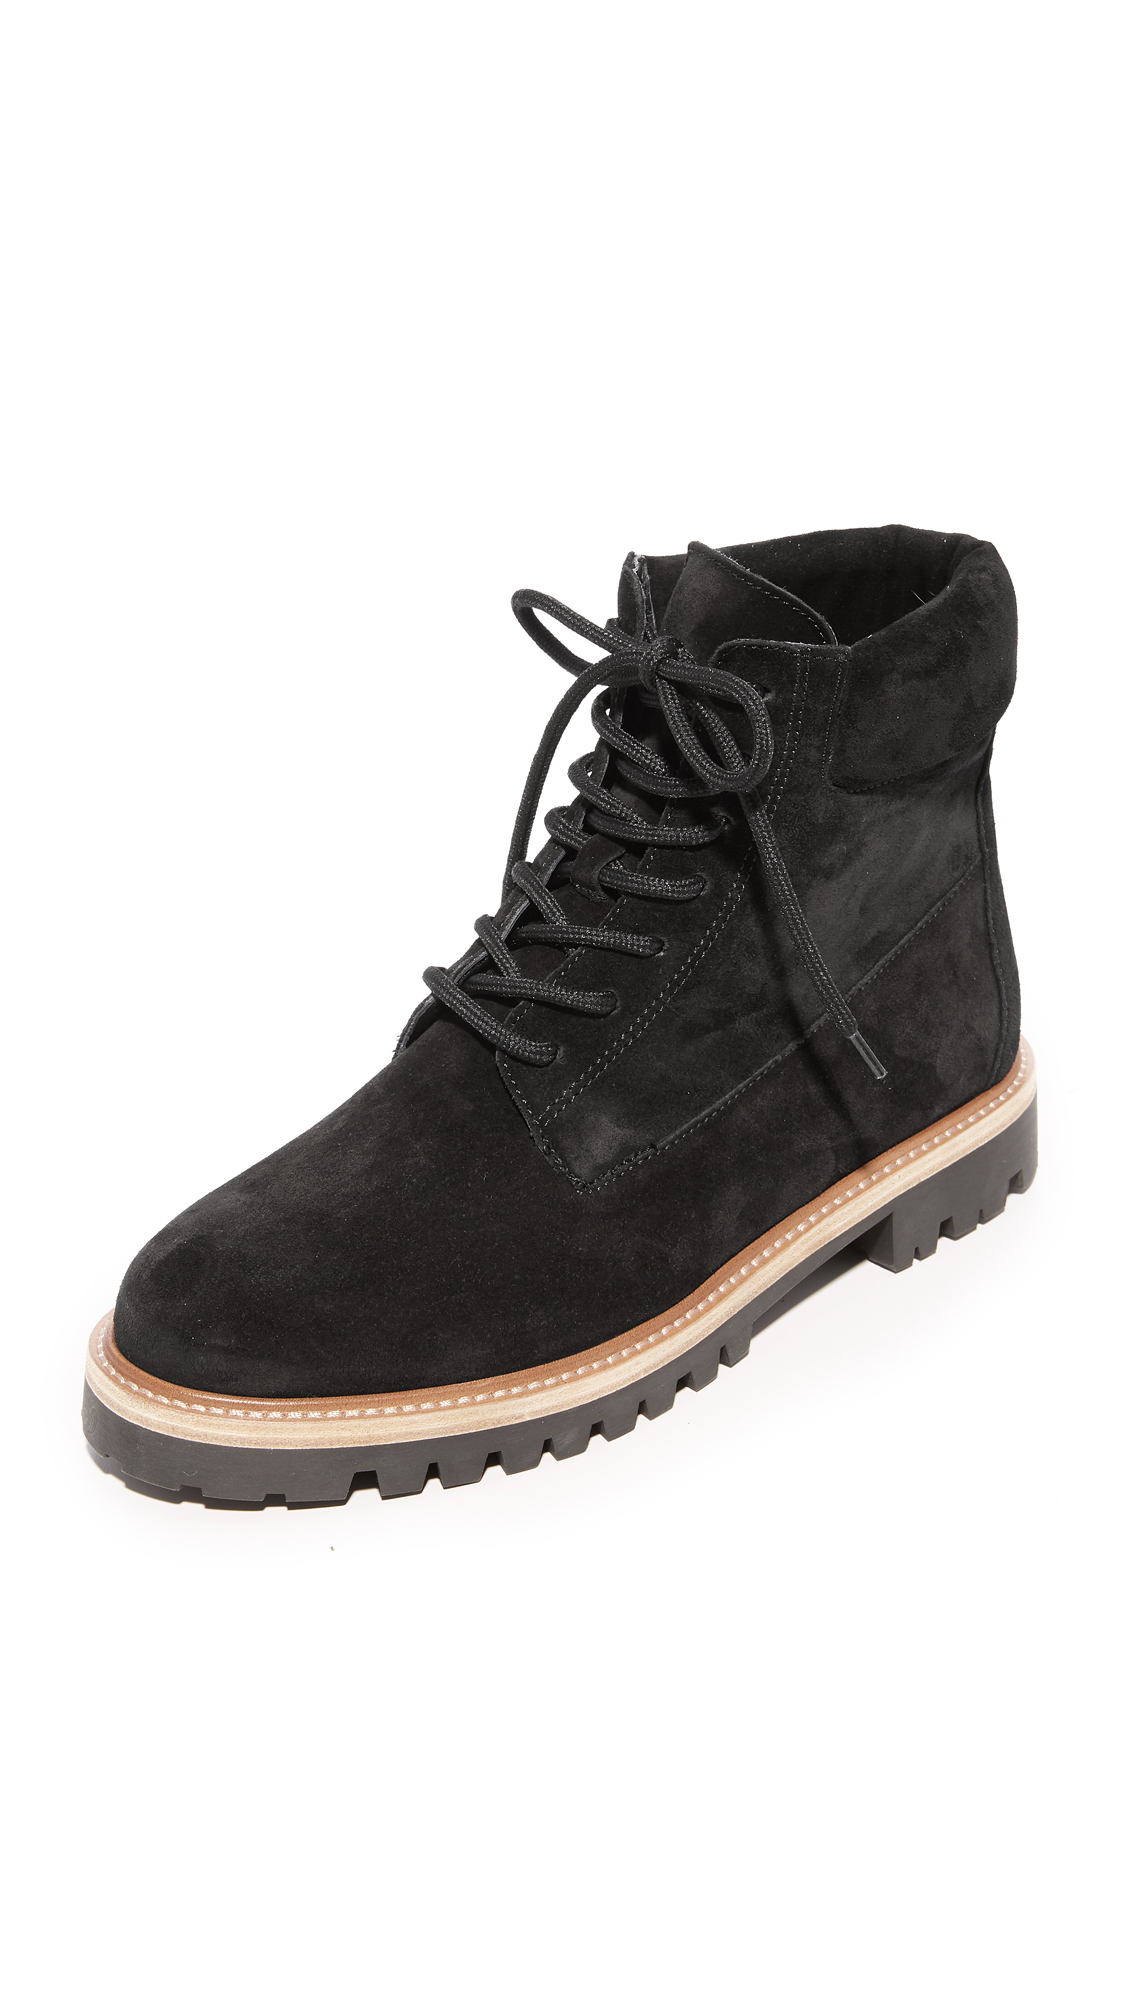 Vince Farley Tread Sole Ankle Boots - Black